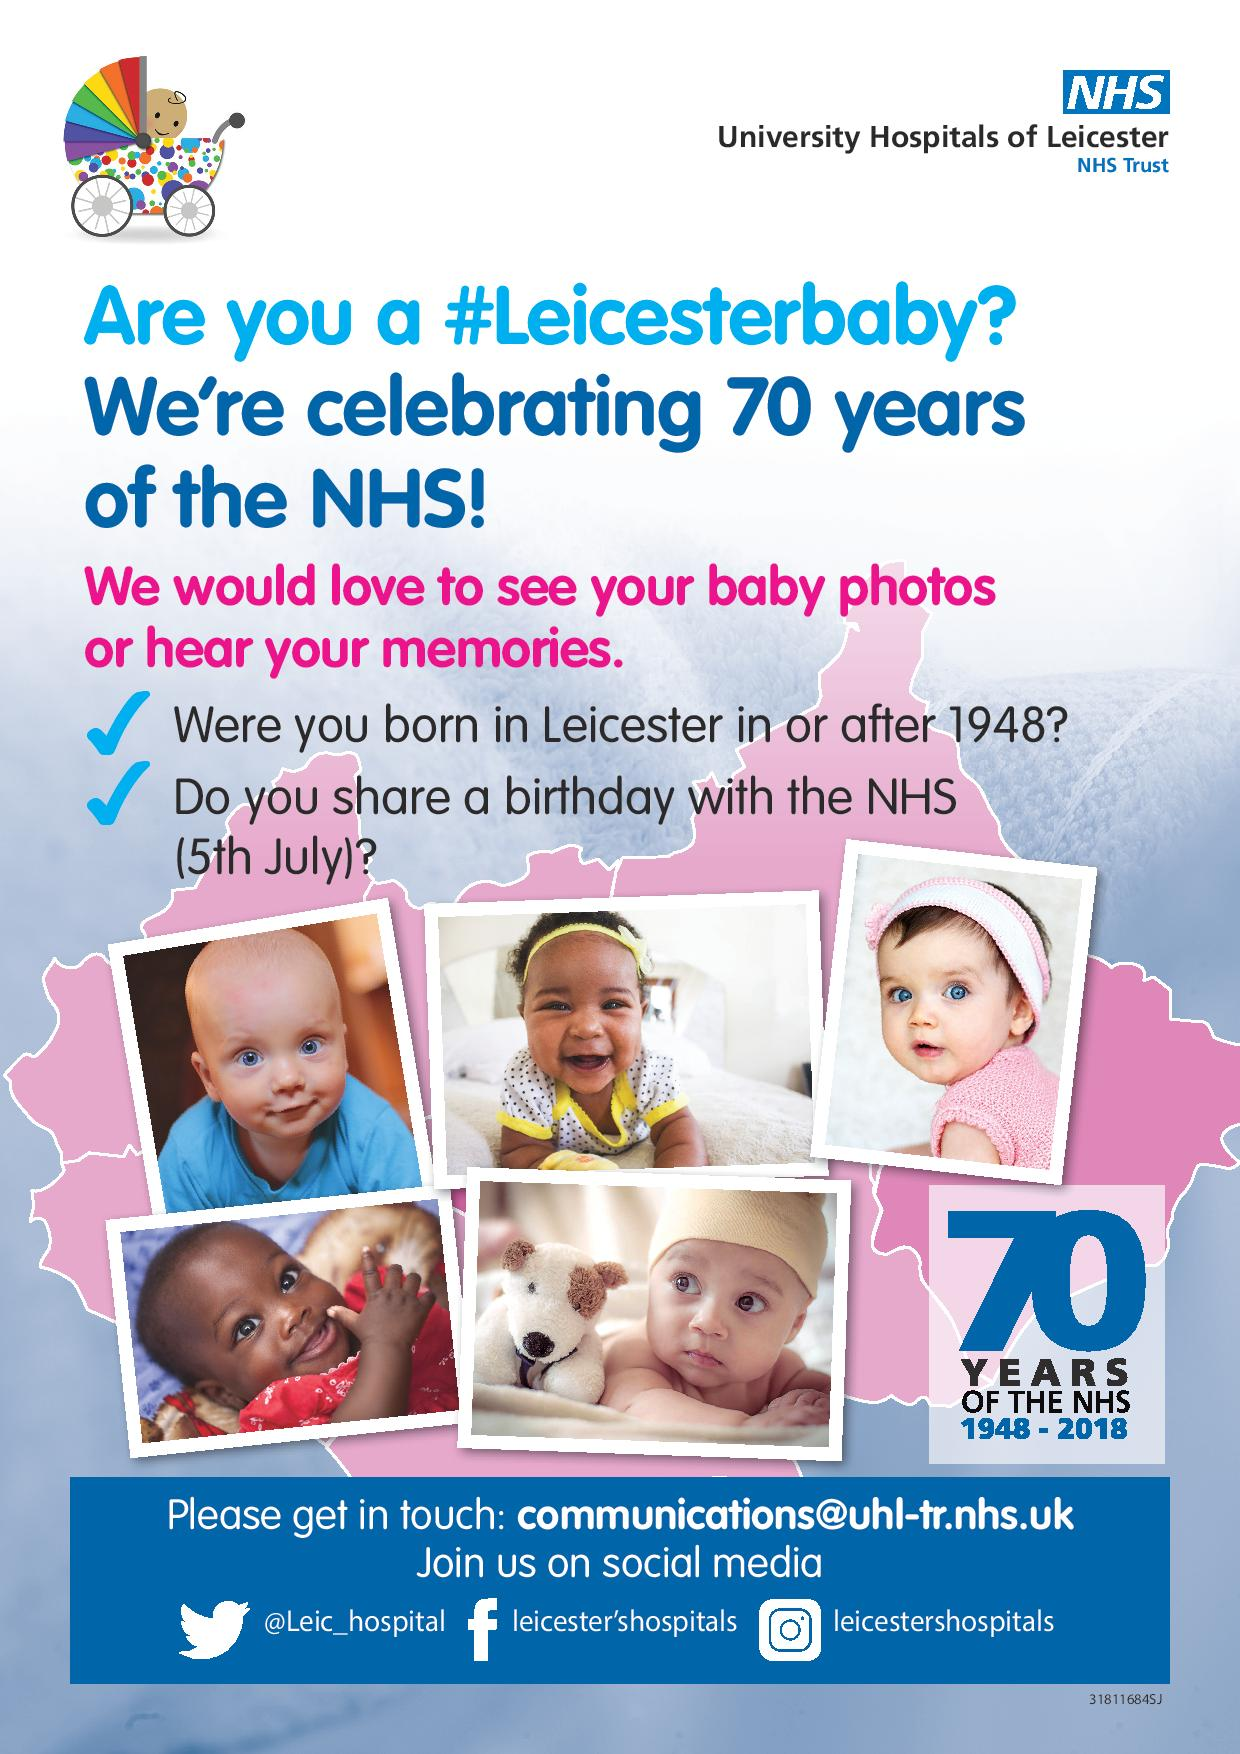 Are you a #Leicesterbaby?